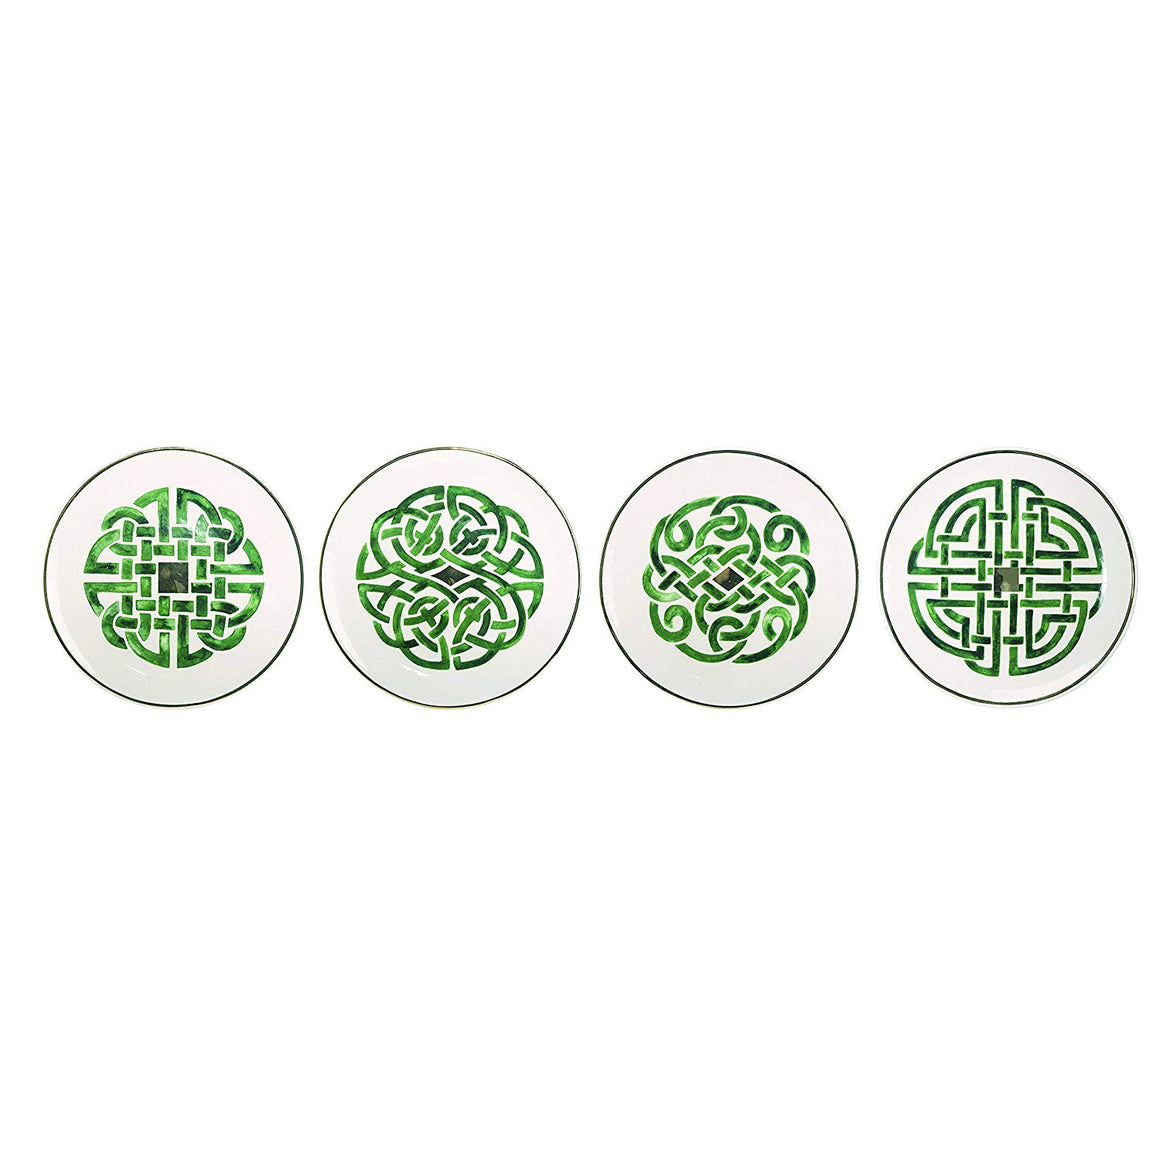 St Patrick's Day Celtic Knot Ceramic Set of 4 Dessert/Appetizer Plates, 6.5 Inch Dessert and Appetizer Plates with Green and Gold, Irish Plate